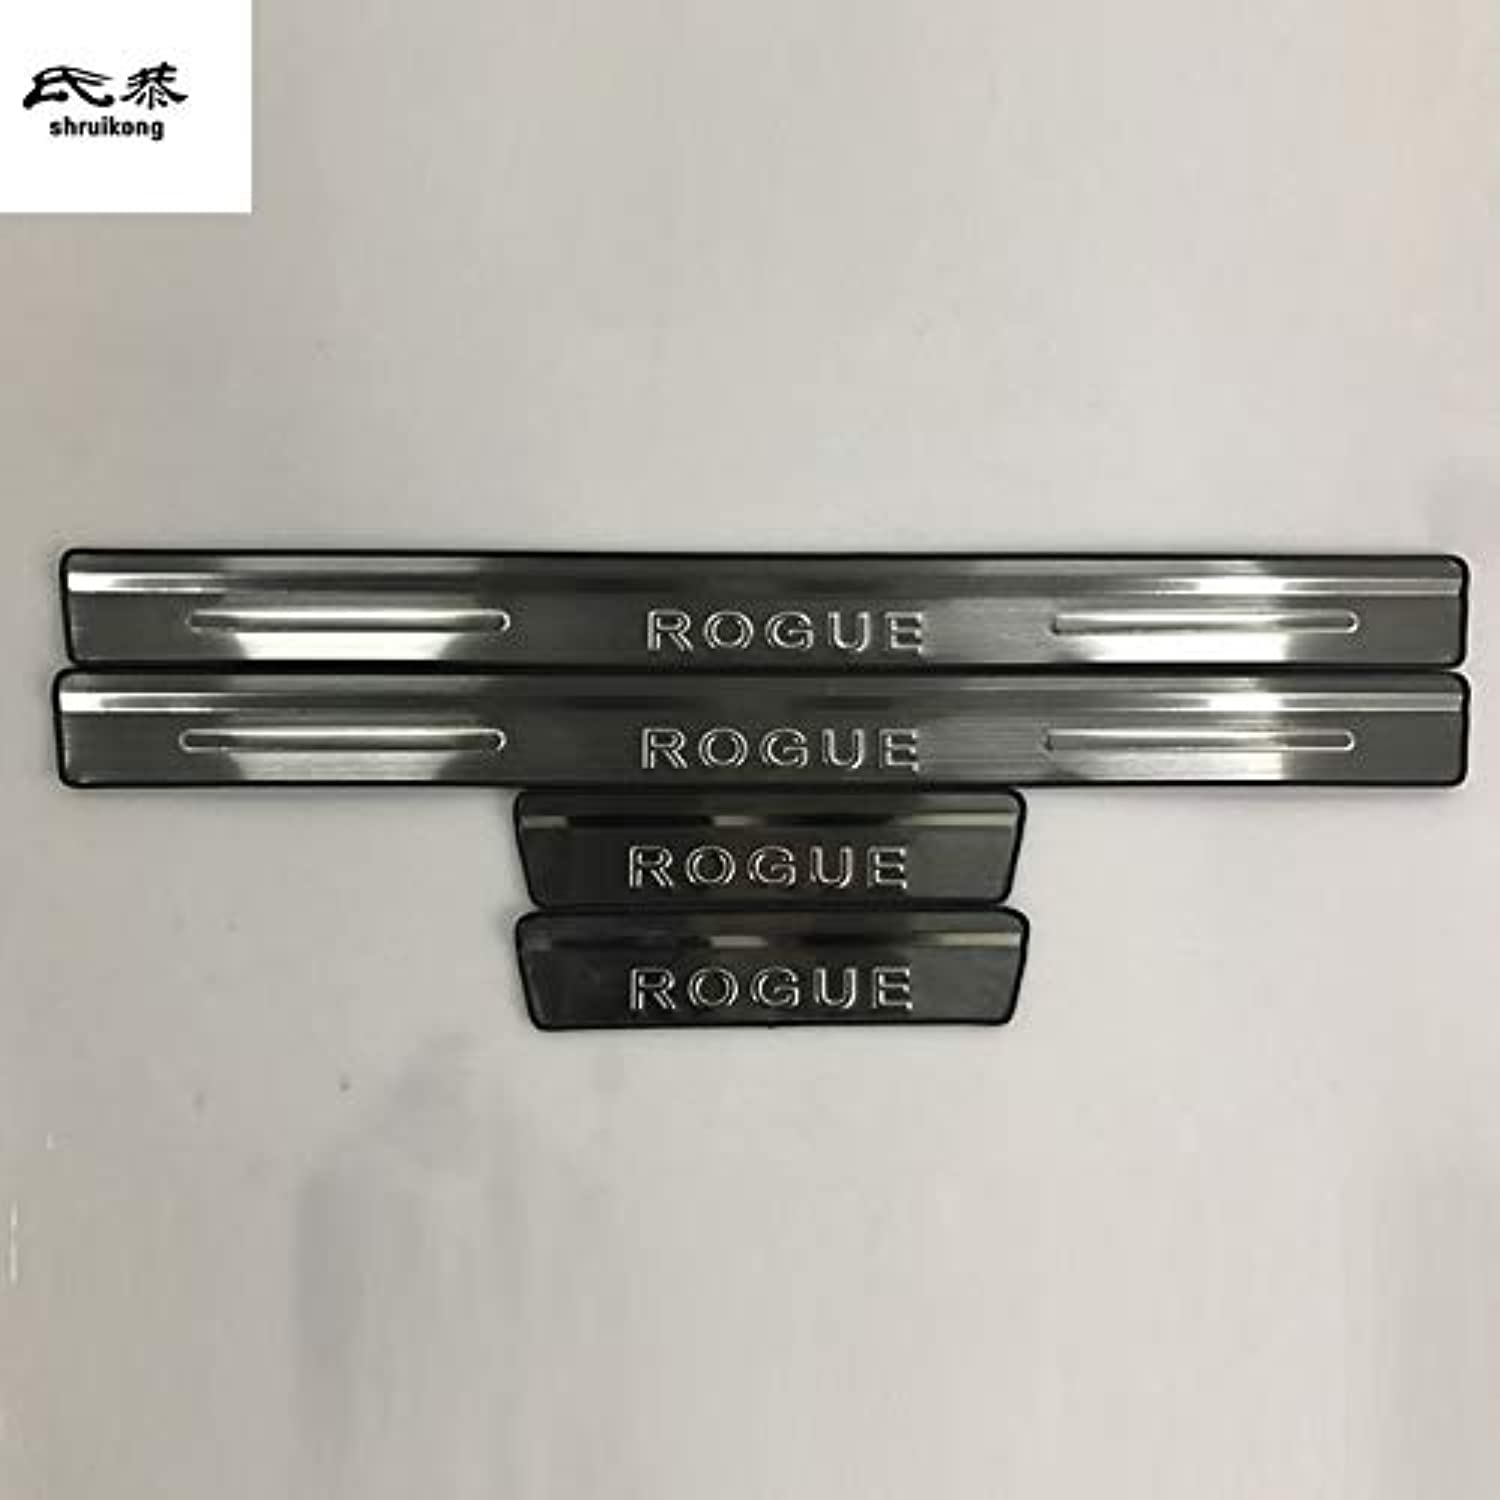 4pcs lot for 2014 2015 2016 2017 Nissan Rogue Sport Stainless Steel Scuff Plate Door sill Pedal car Accessories